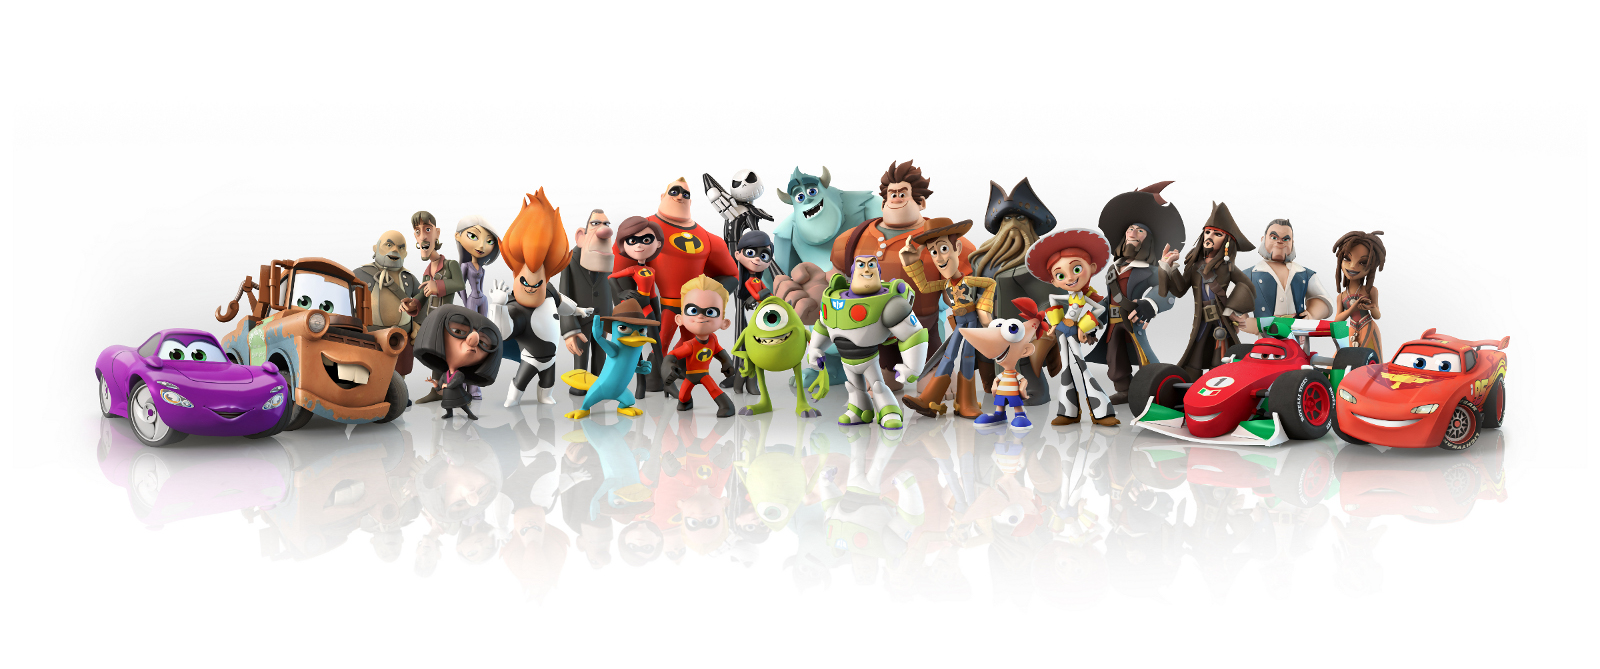 Disney Characters Png Infinity Character